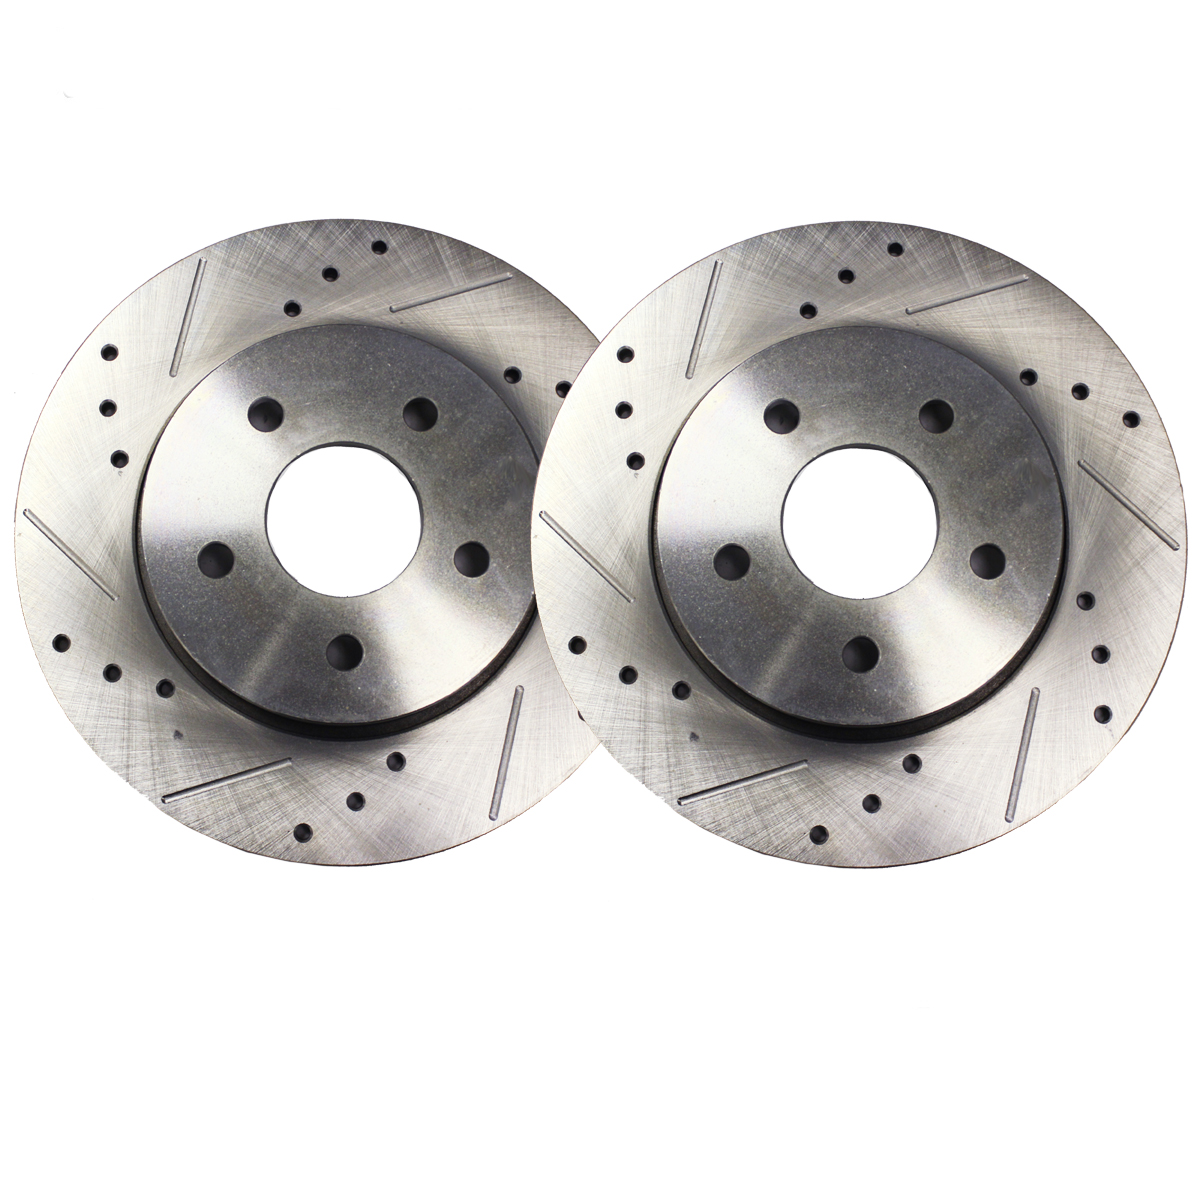 297mm Detroit Axle 11.69 Performance Grade for 2014-2017 Mazda 6 - 2013-2015 Mazda CX-5 Front Drilled and Slotted Brake Rotors